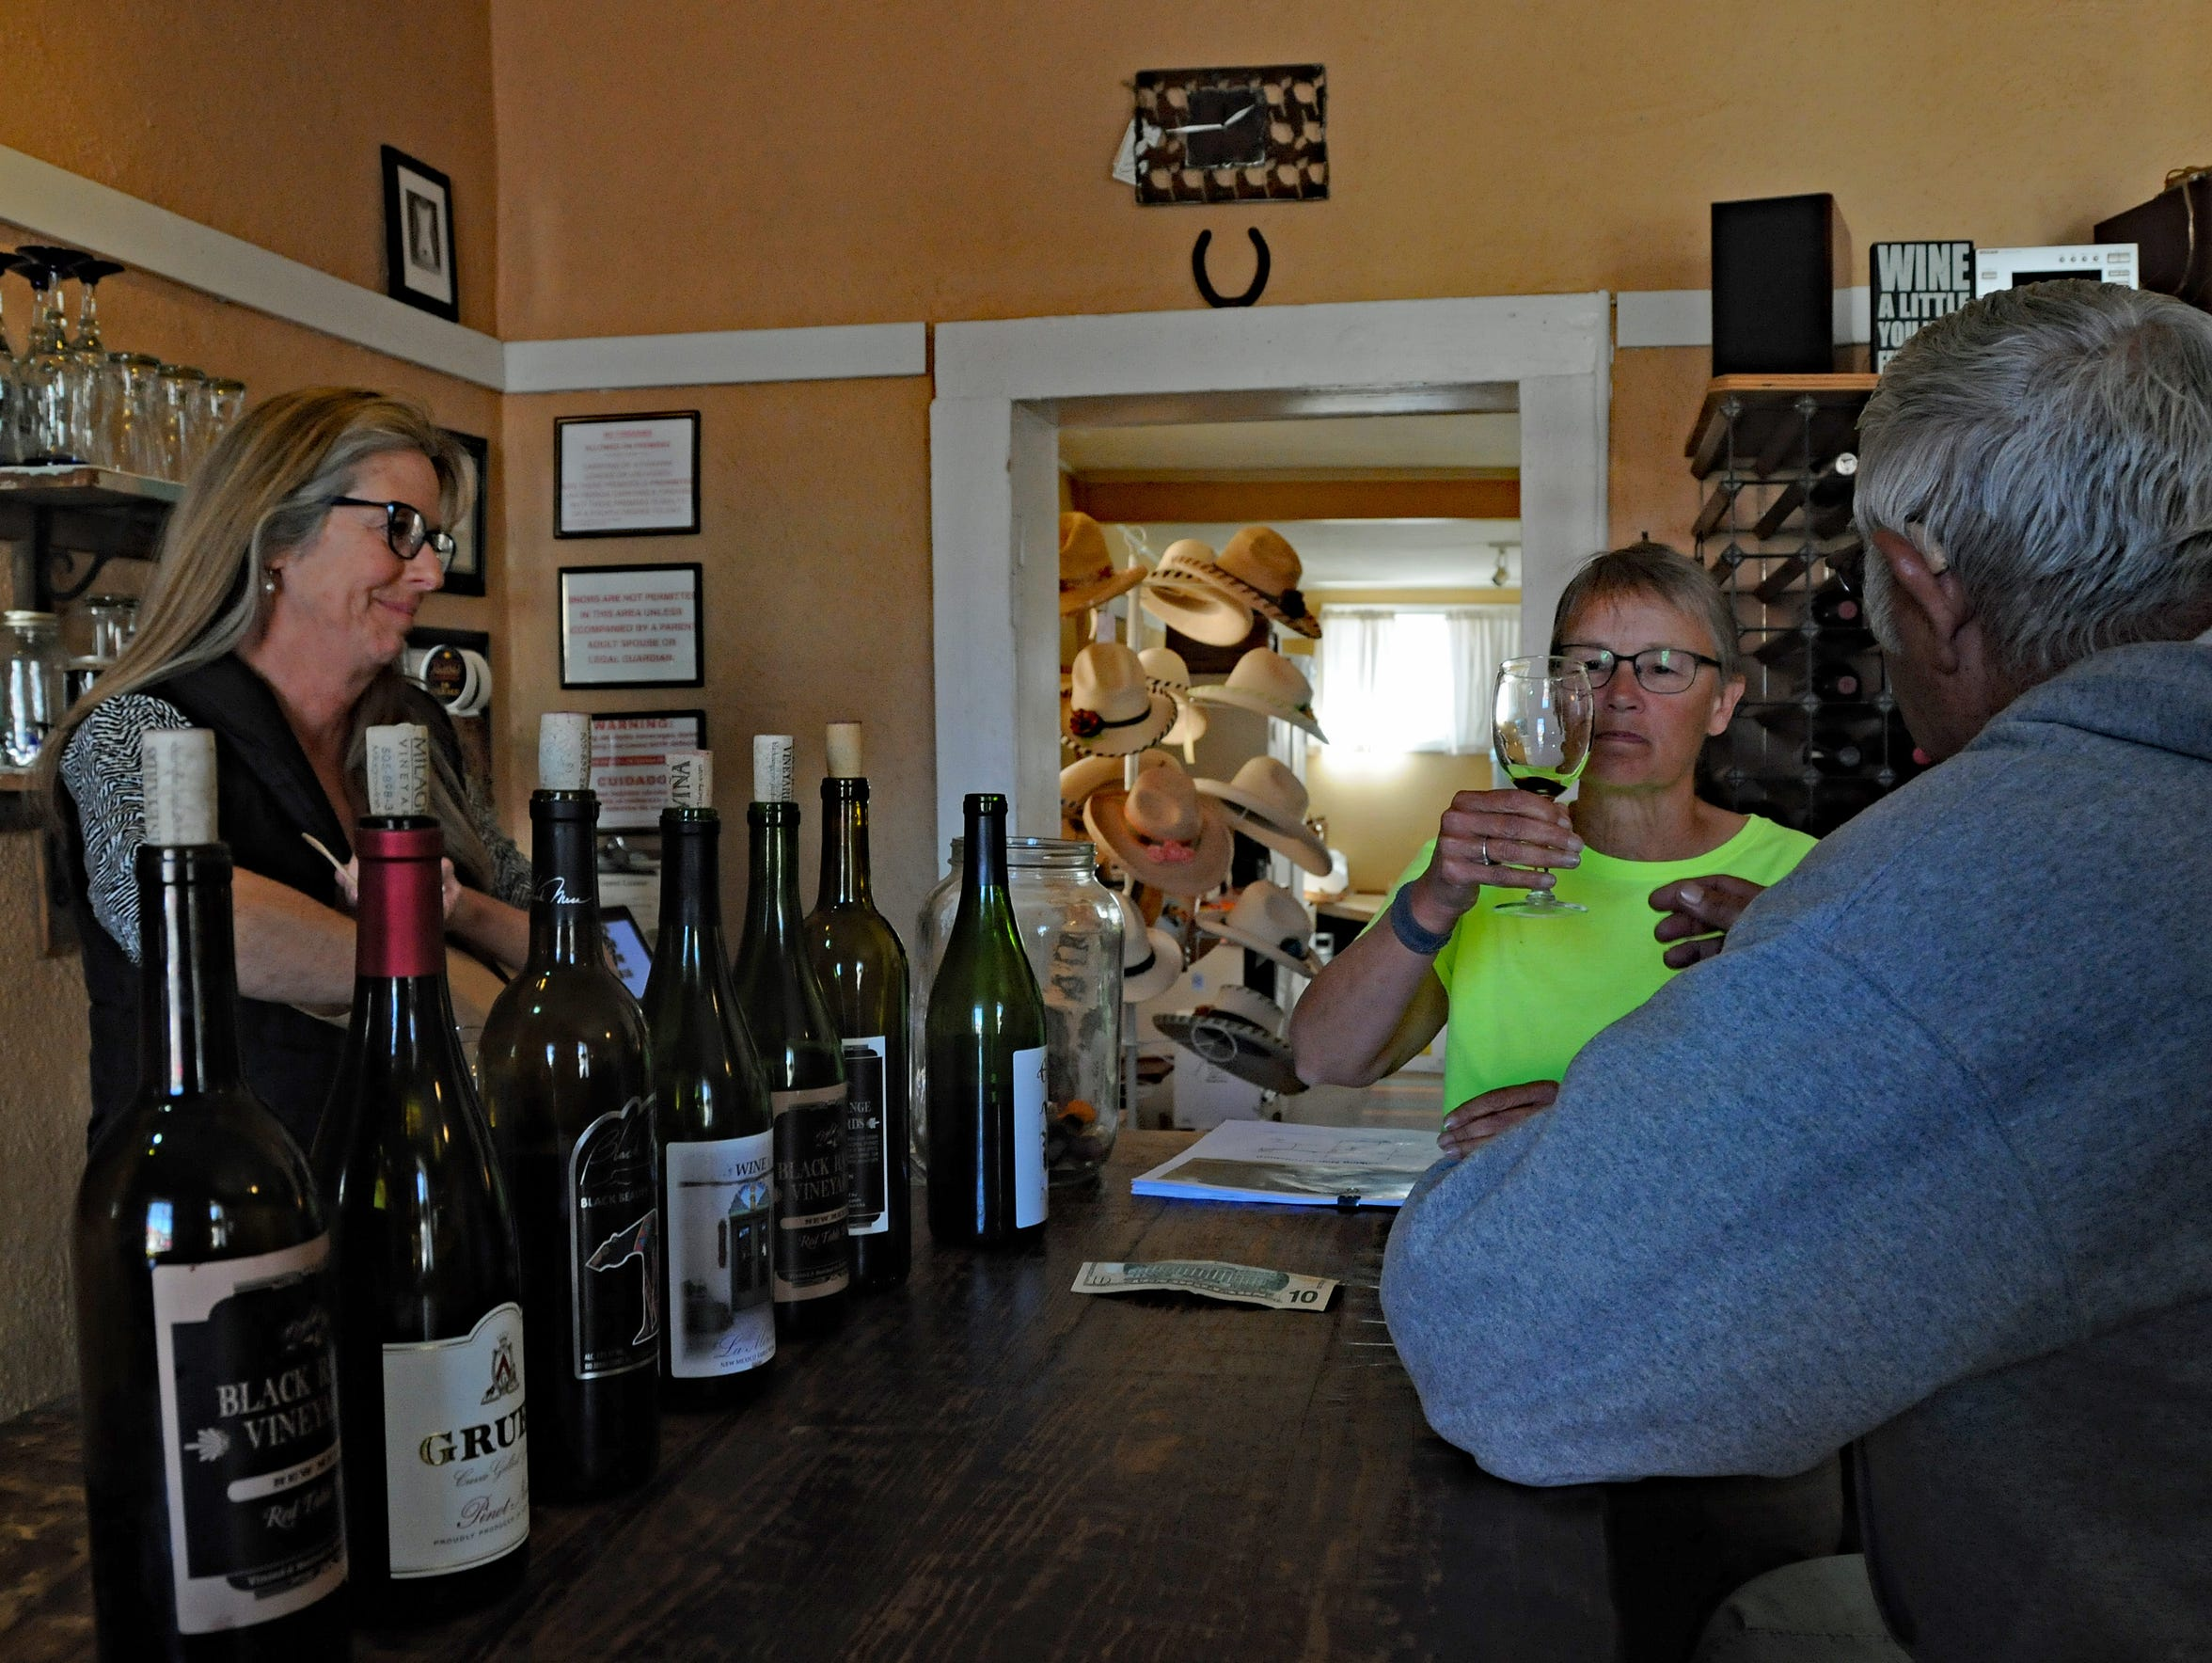 Barb Payla of Minnesota samples wine at the Black Range